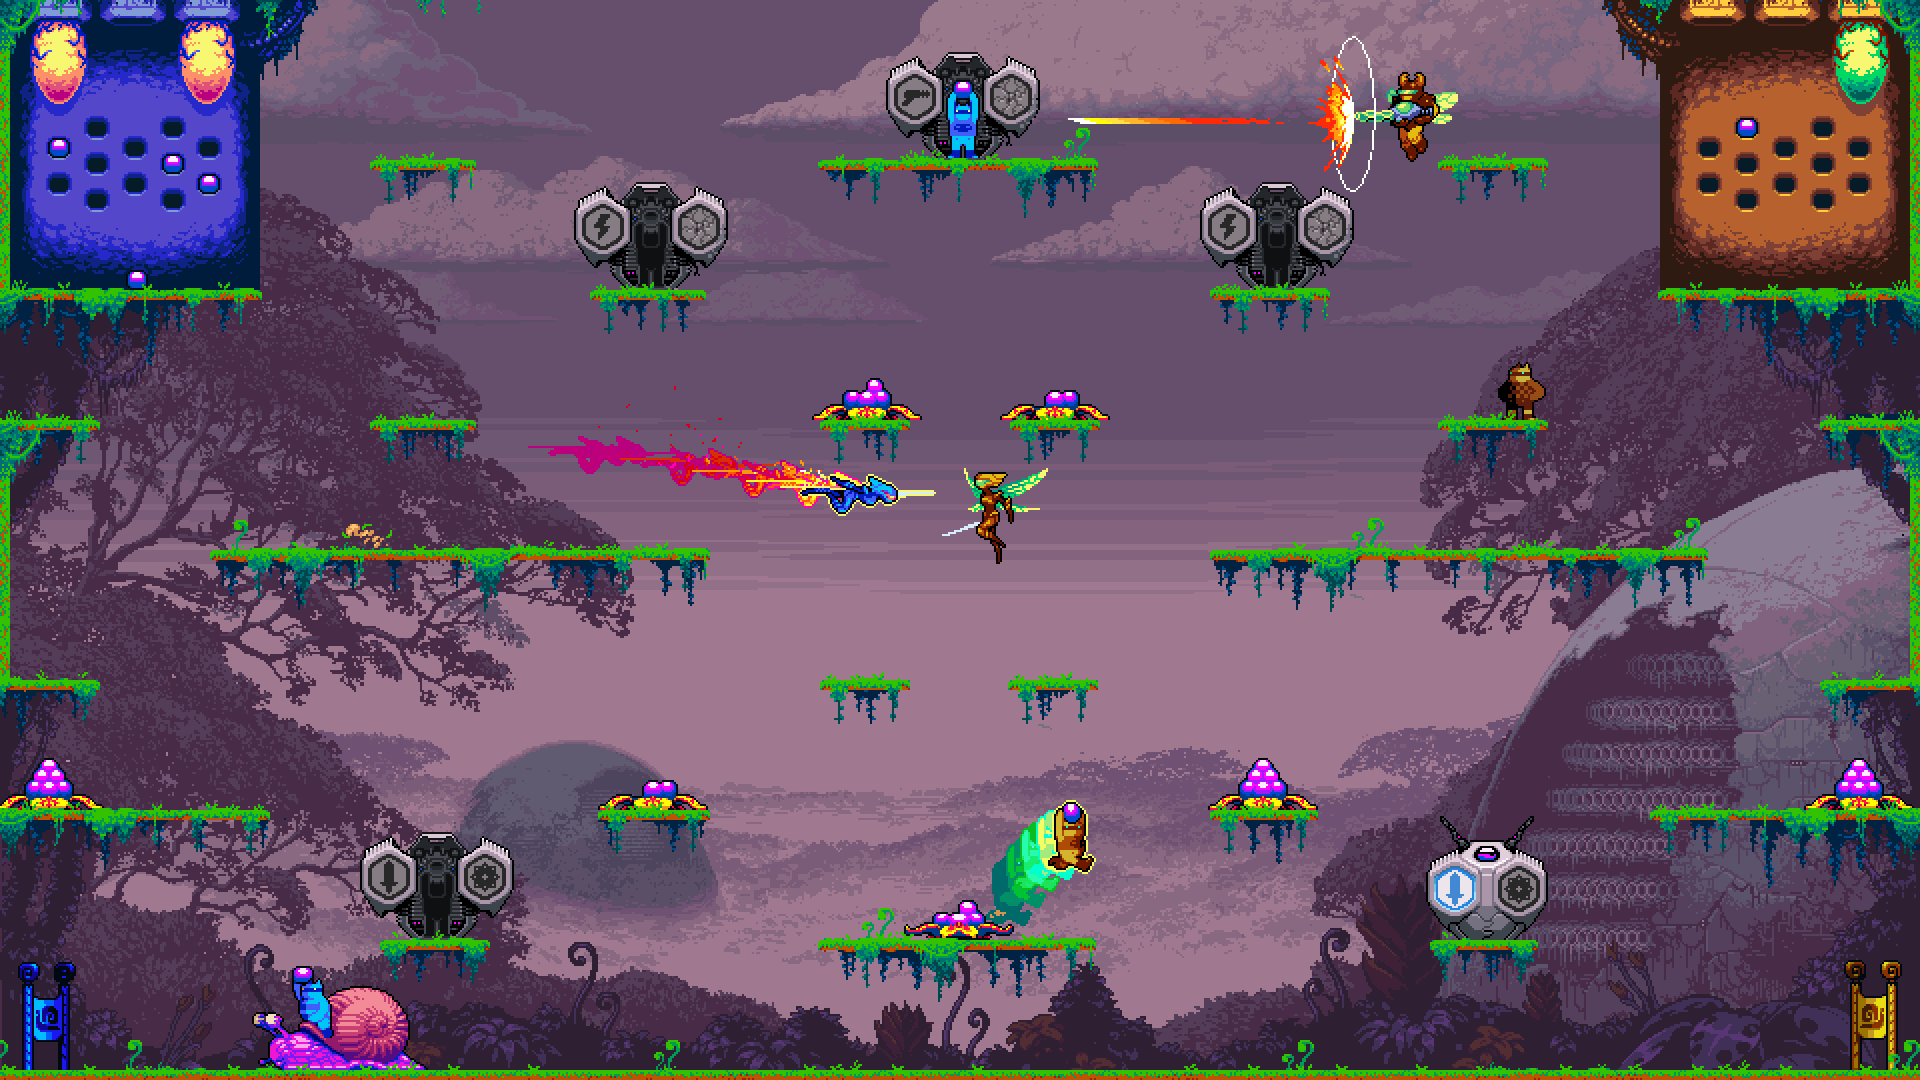 Many players throughout the level, some running with balls, one firing a laser, and two queens fighting